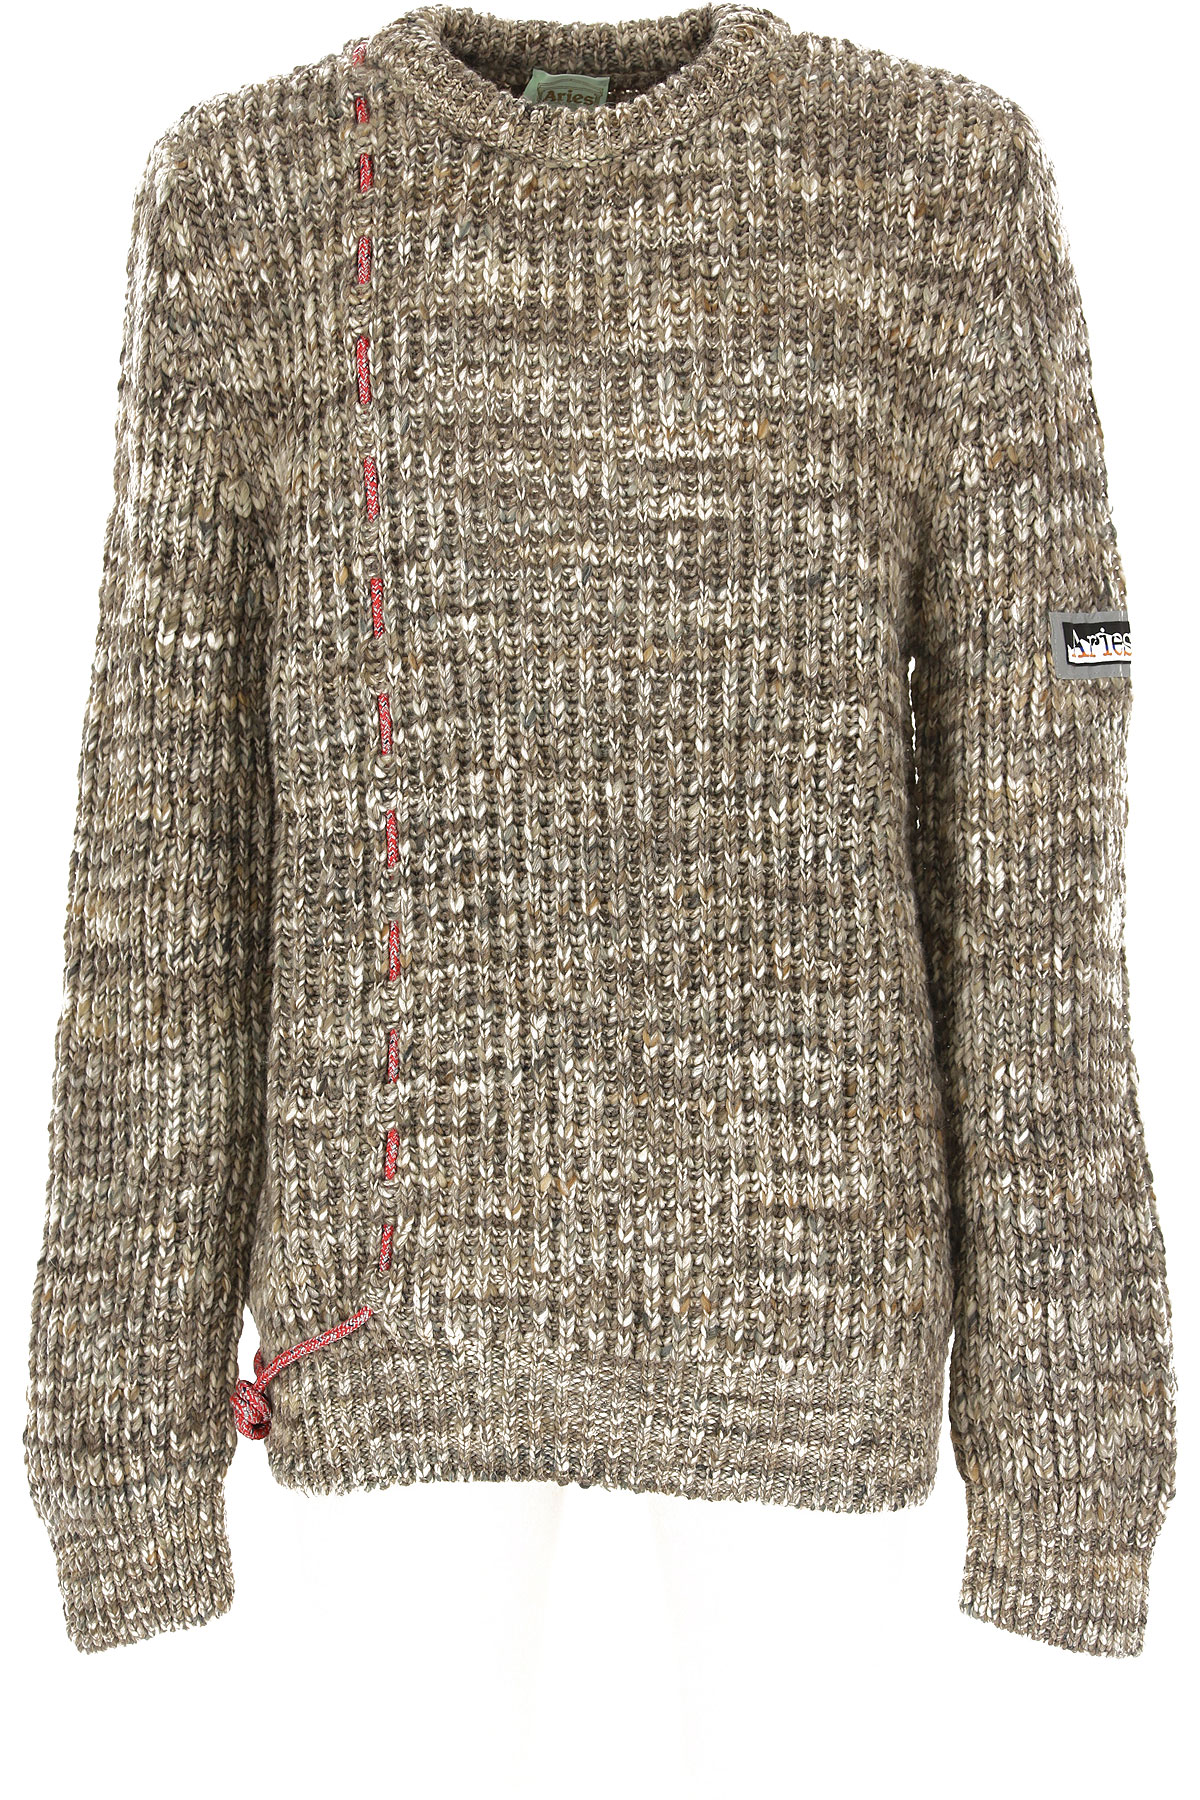 Aries Sweater for Men Jumper On Sale, Grey Ice, Acrylic, 2019, L M